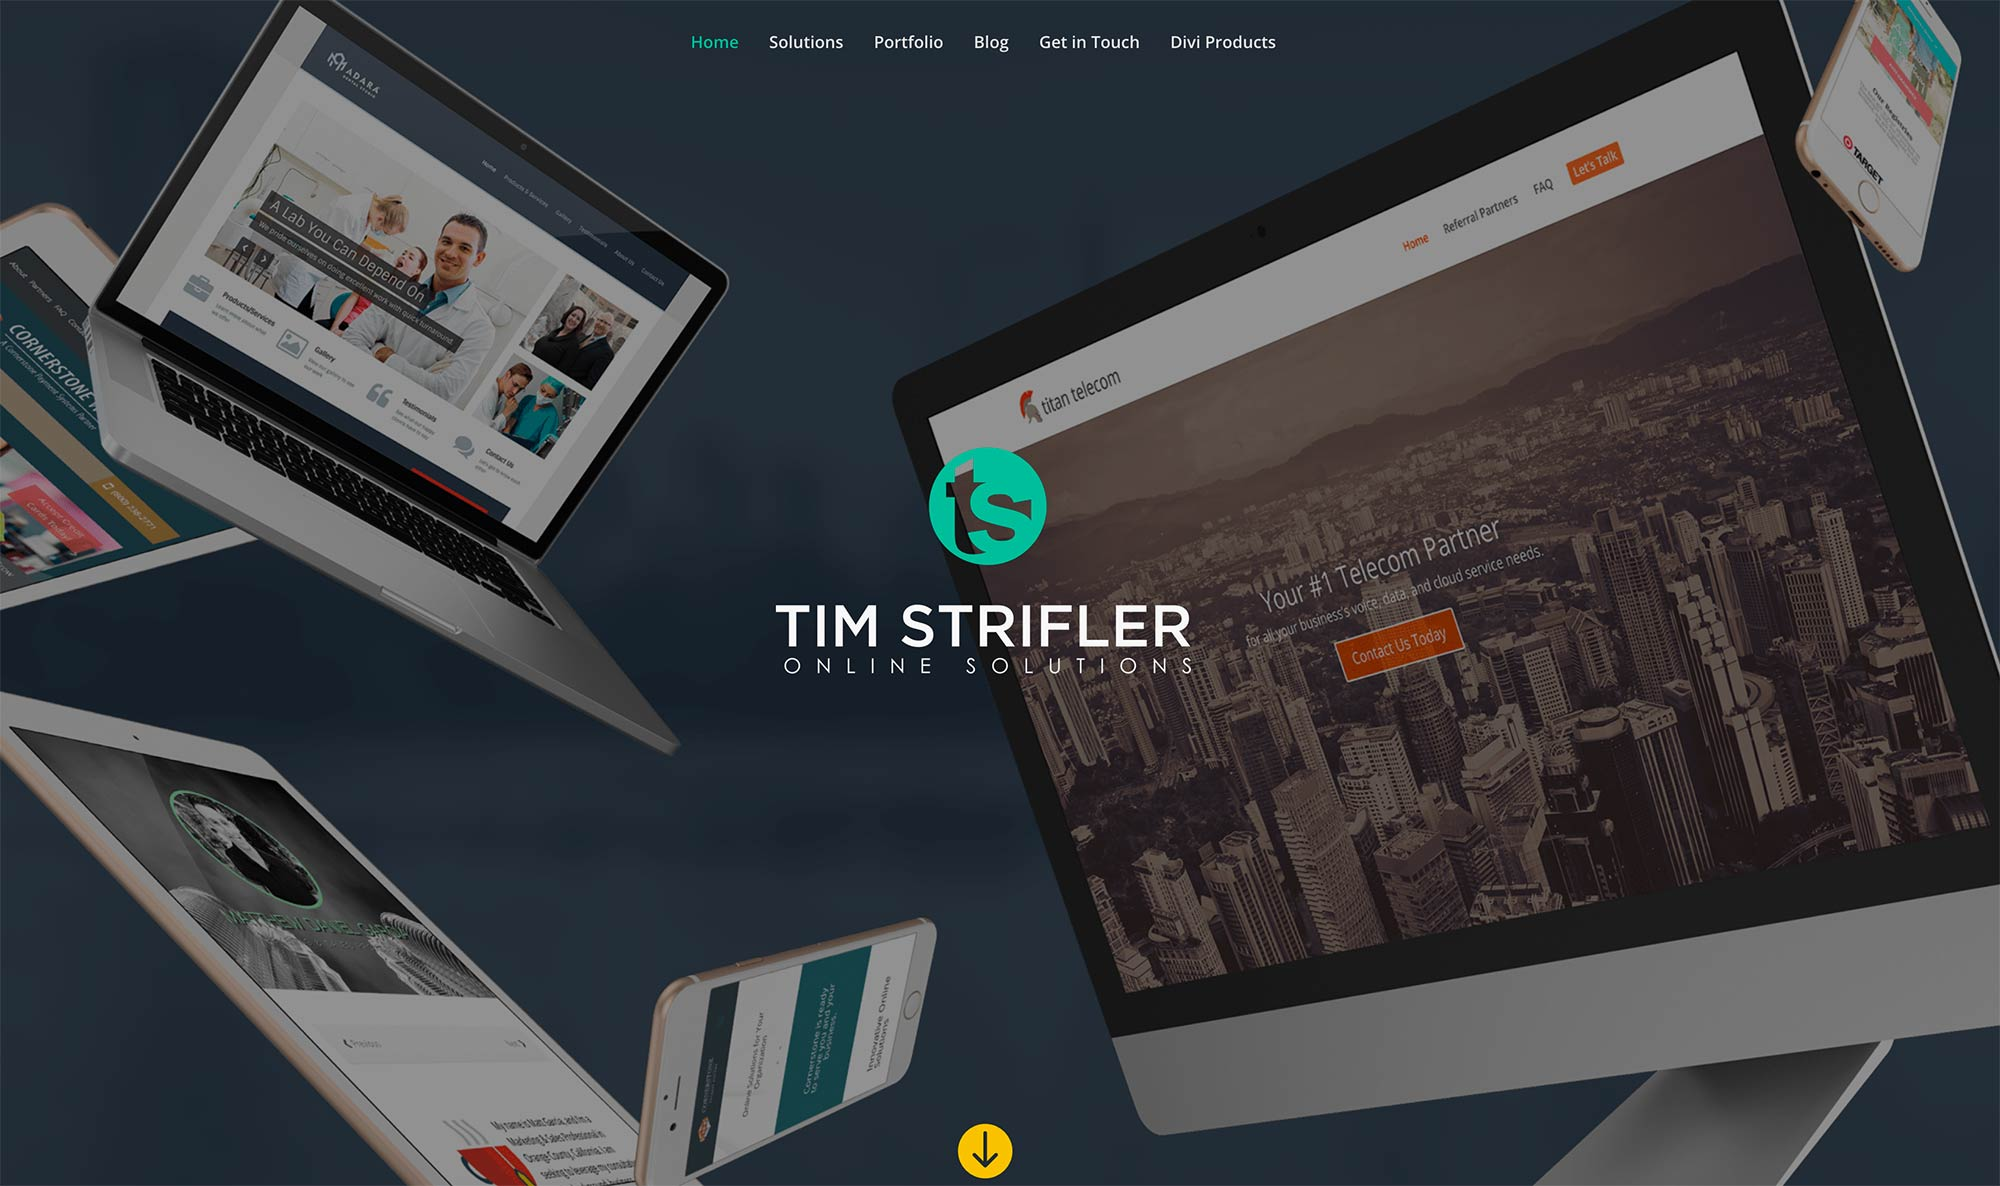 Tim Strifler